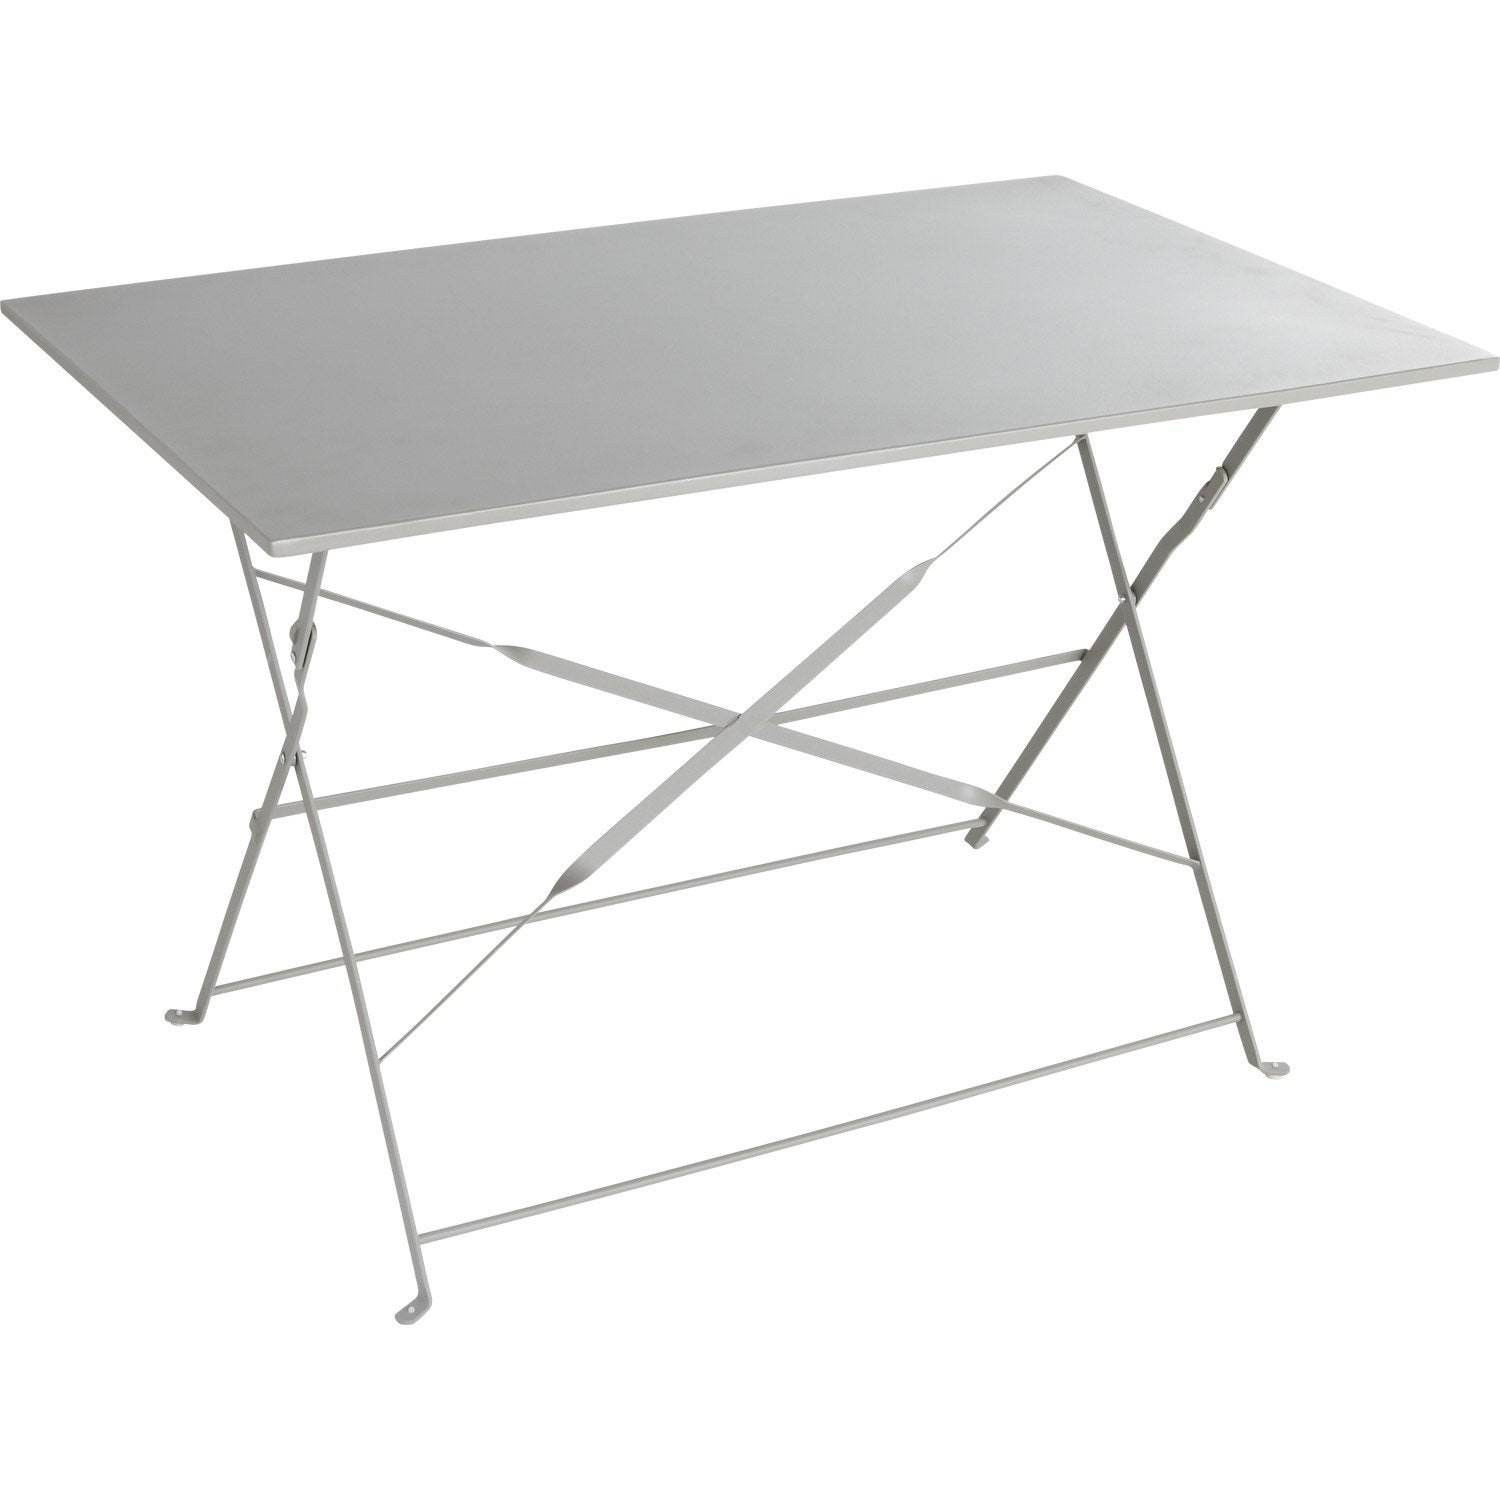 Table de jardin naterial flore rectangulaire gris 4 for Leroy merlin table jardin